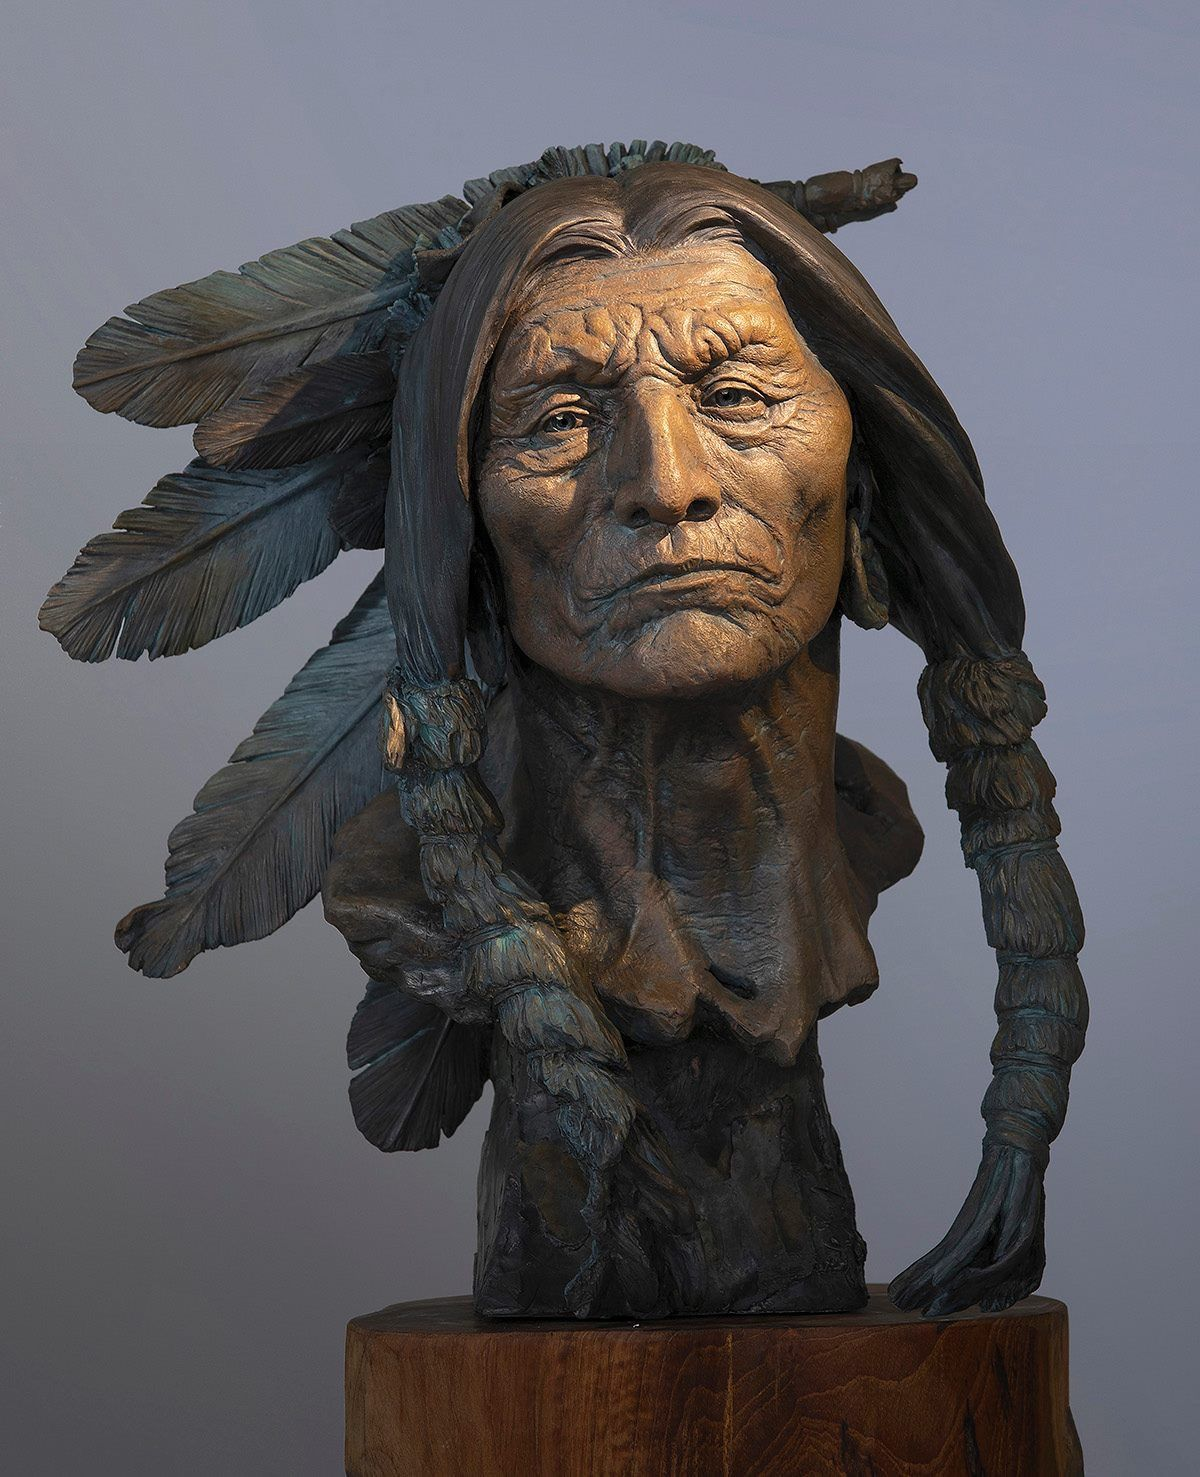 A Sculpture Of A Native American Man From The Cheyenne